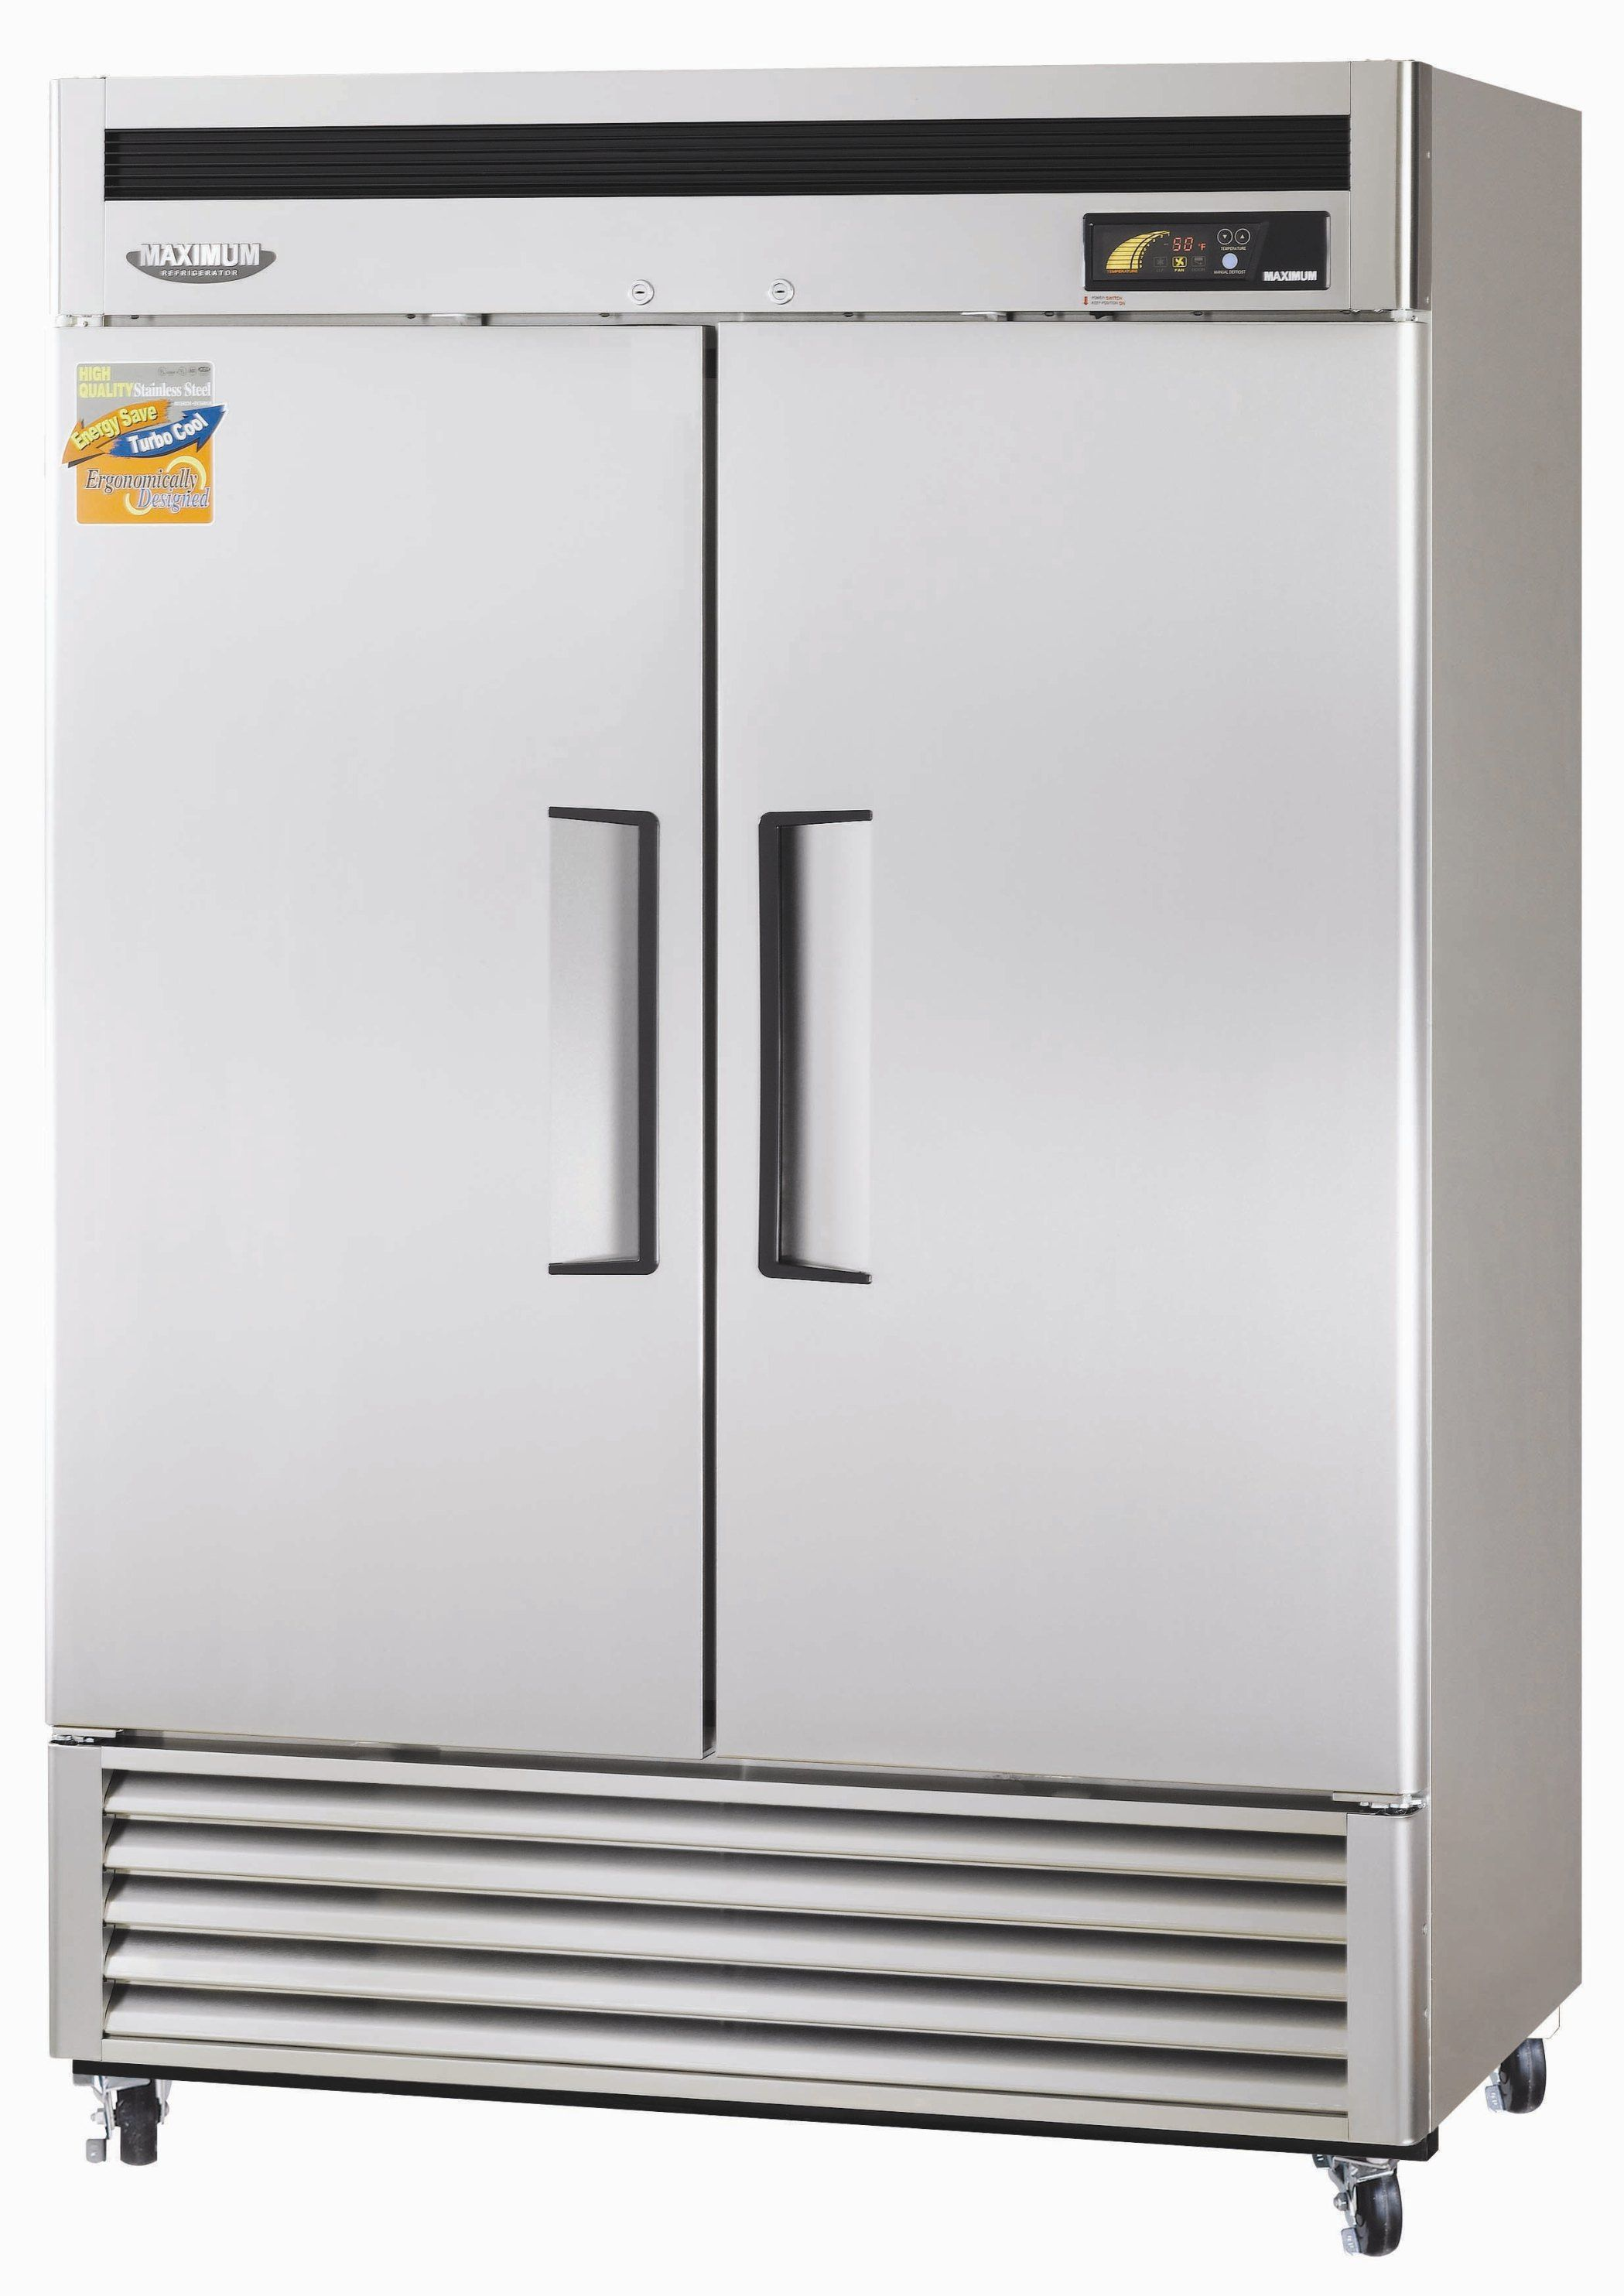 49cu Ft 2 Doors Available For Freezer And Refrigeration 49 Pies Cubicos 2 Puertas Disponible En Cong Freezer Sale Tall Cabinet Storage Locker Storage